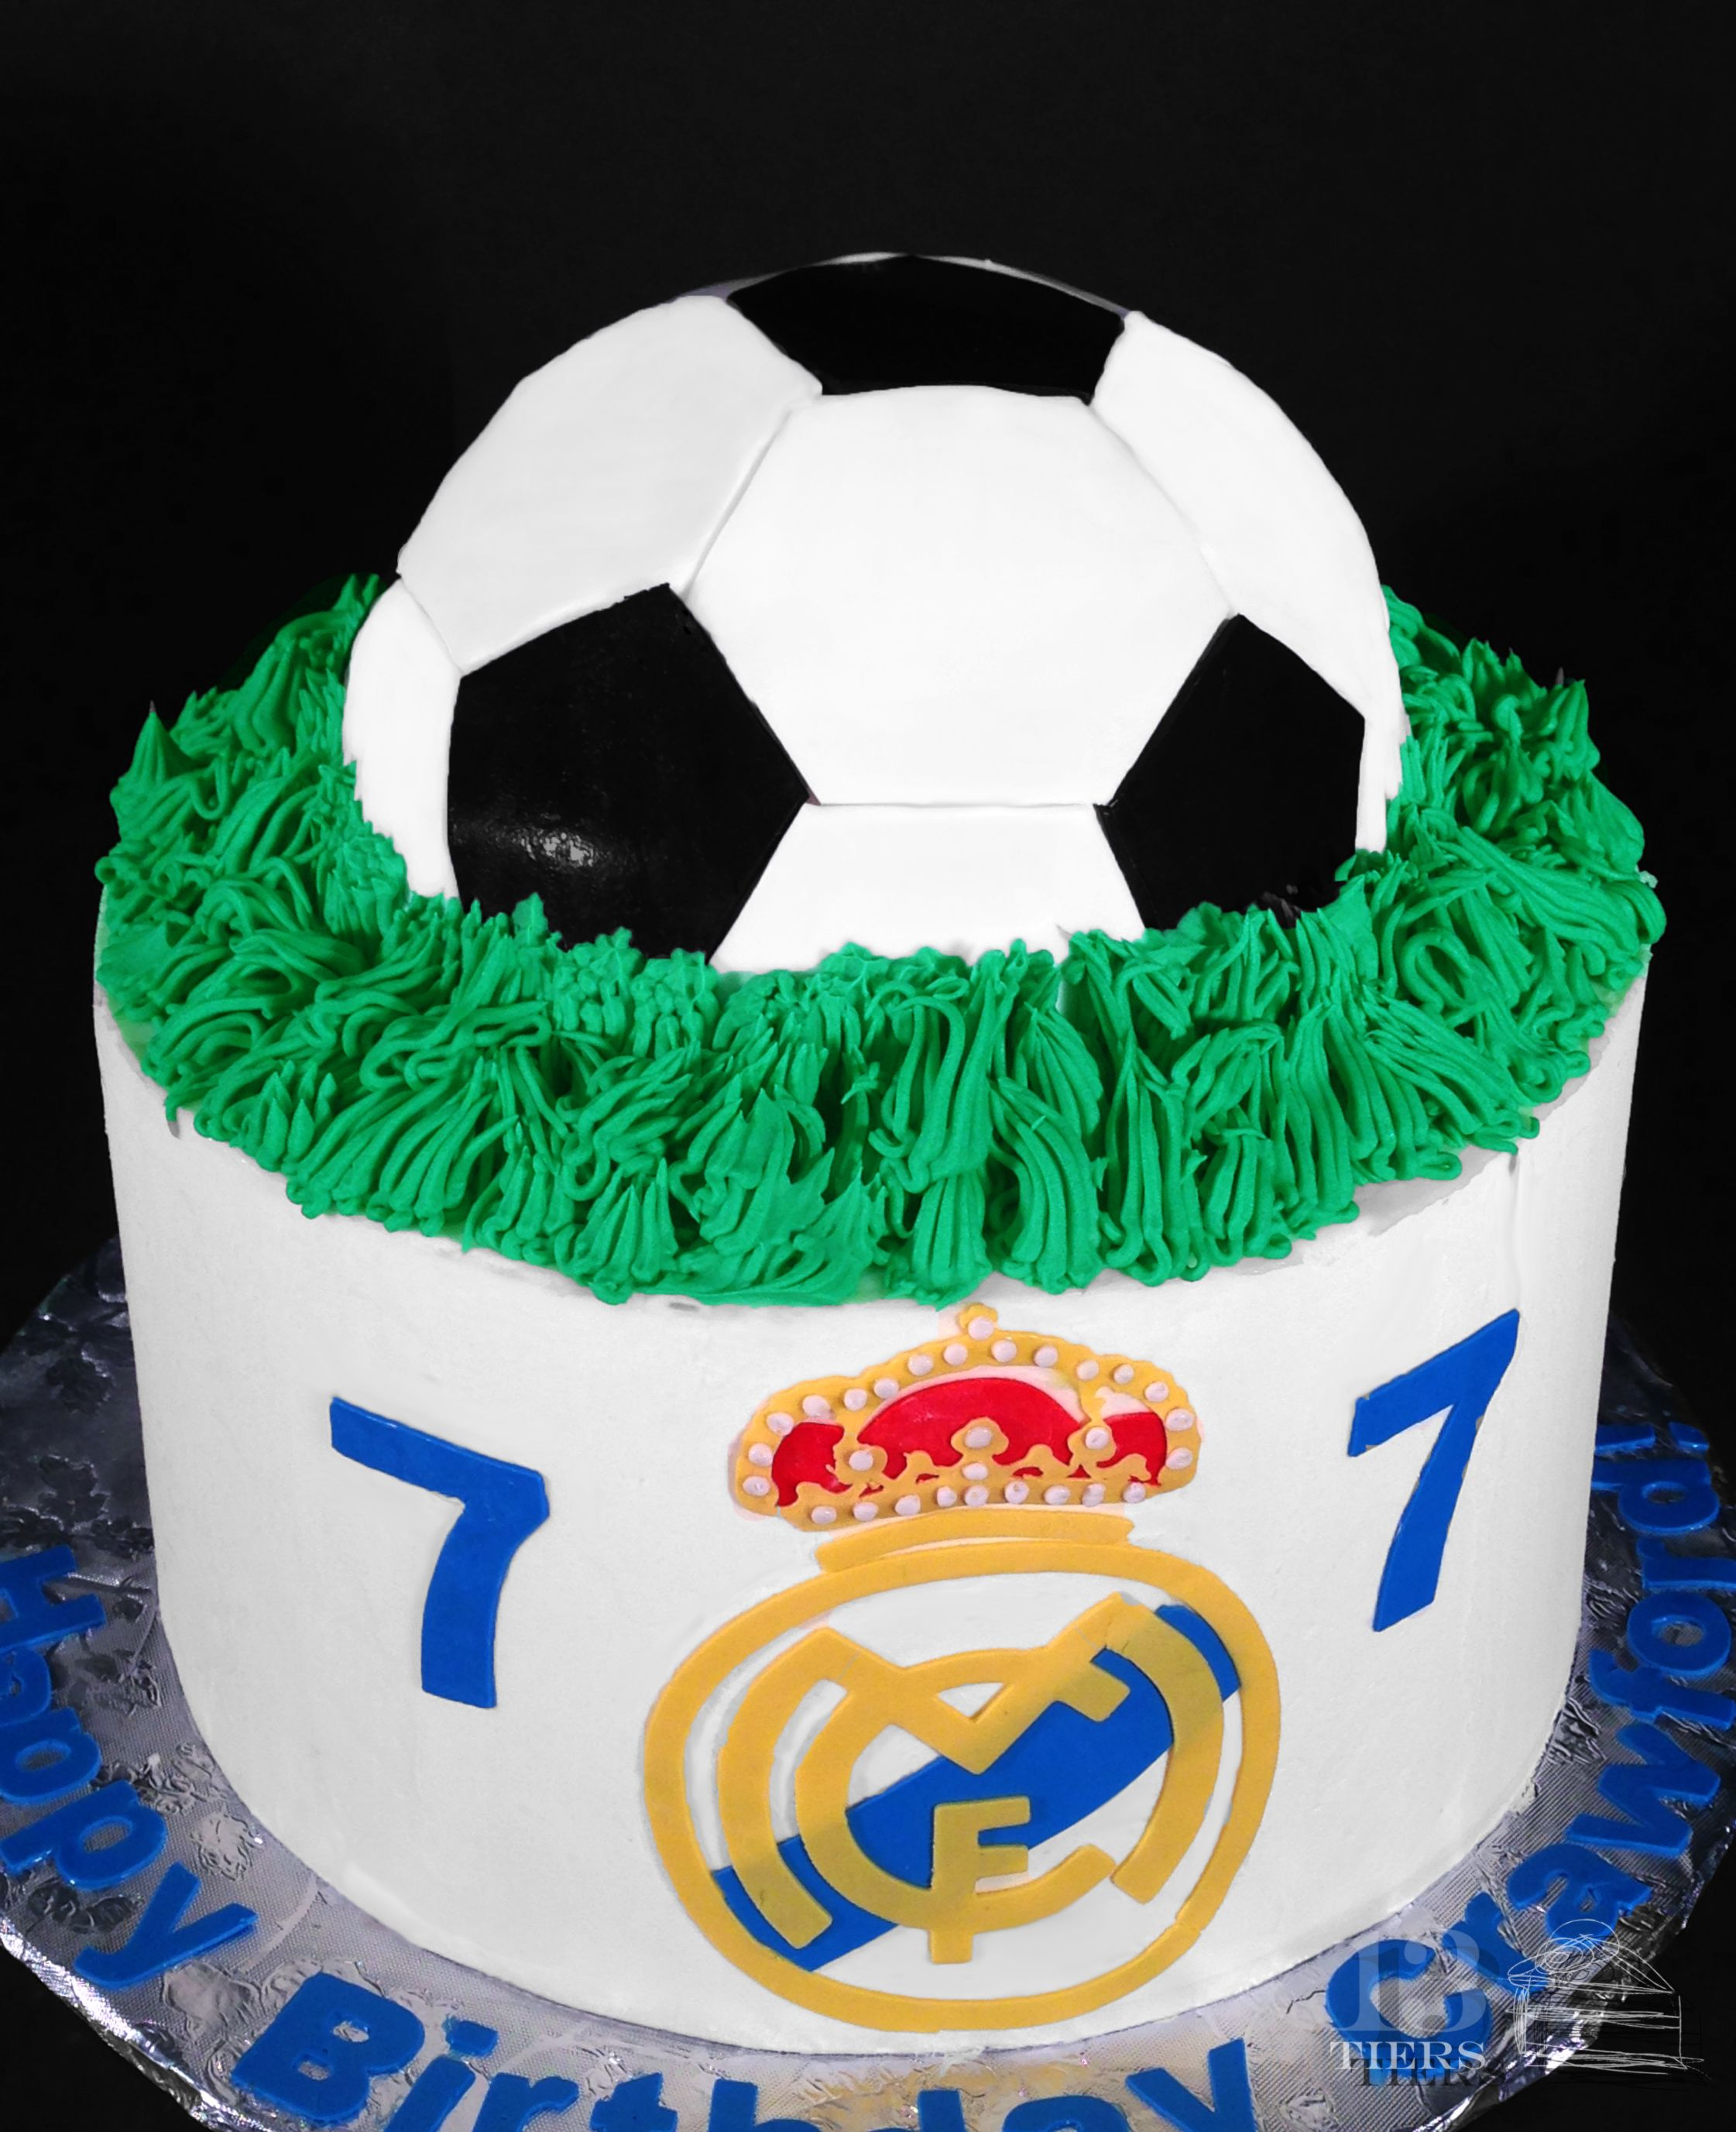 I think its really cool and I love soccer so I think Im going to